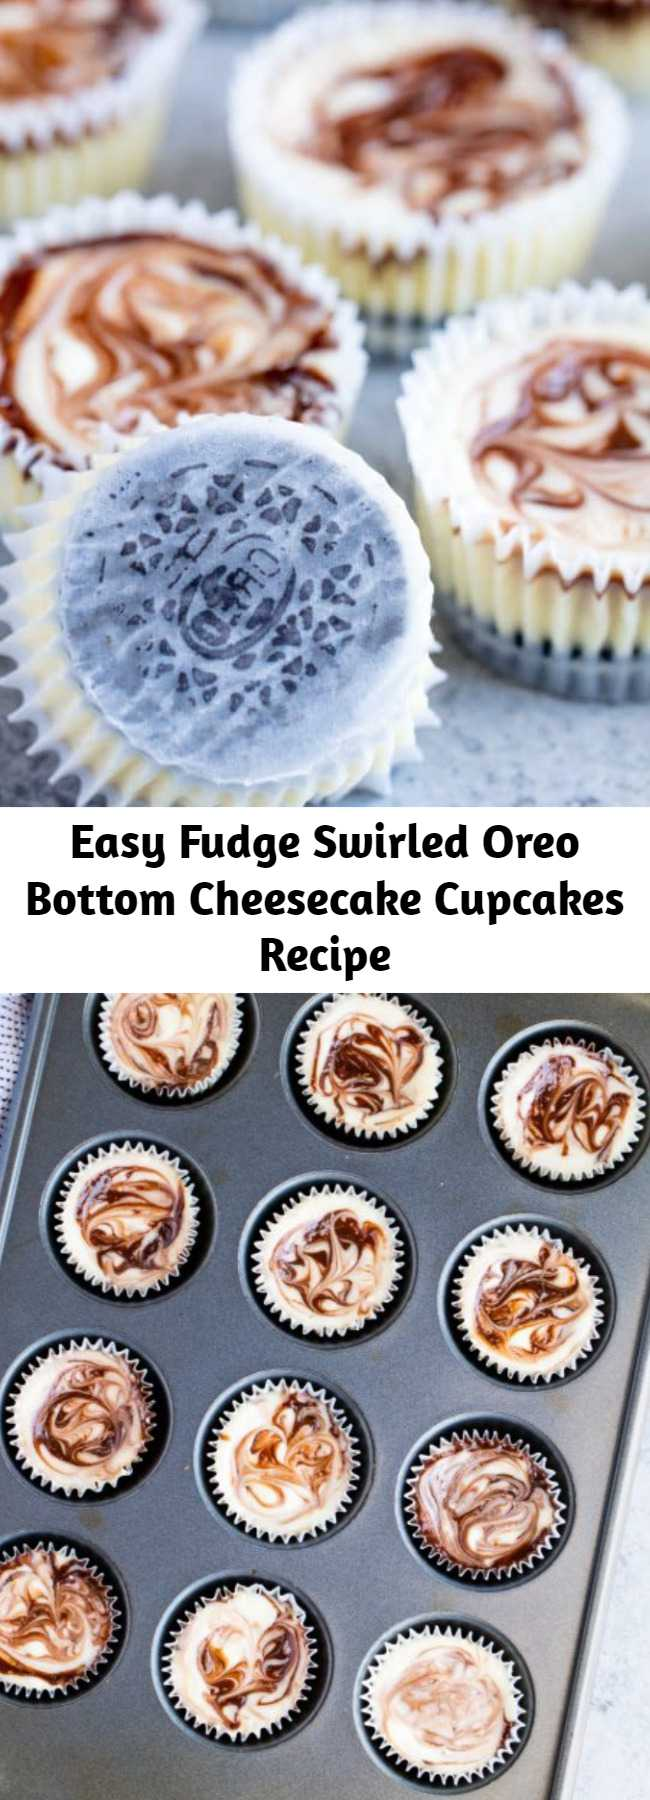 Easy Fudge Swirled Oreo Bottom Cheesecake Cupcakes Recipe - Fudge Swirled Oreo Bottom Cheesecake Cupcakes are a delicious twist on your standard cupcake. It's a fudge swirled mini cheesecake that sits on top of an Oreo cookie. What's not to love? #cheesecake #oreo